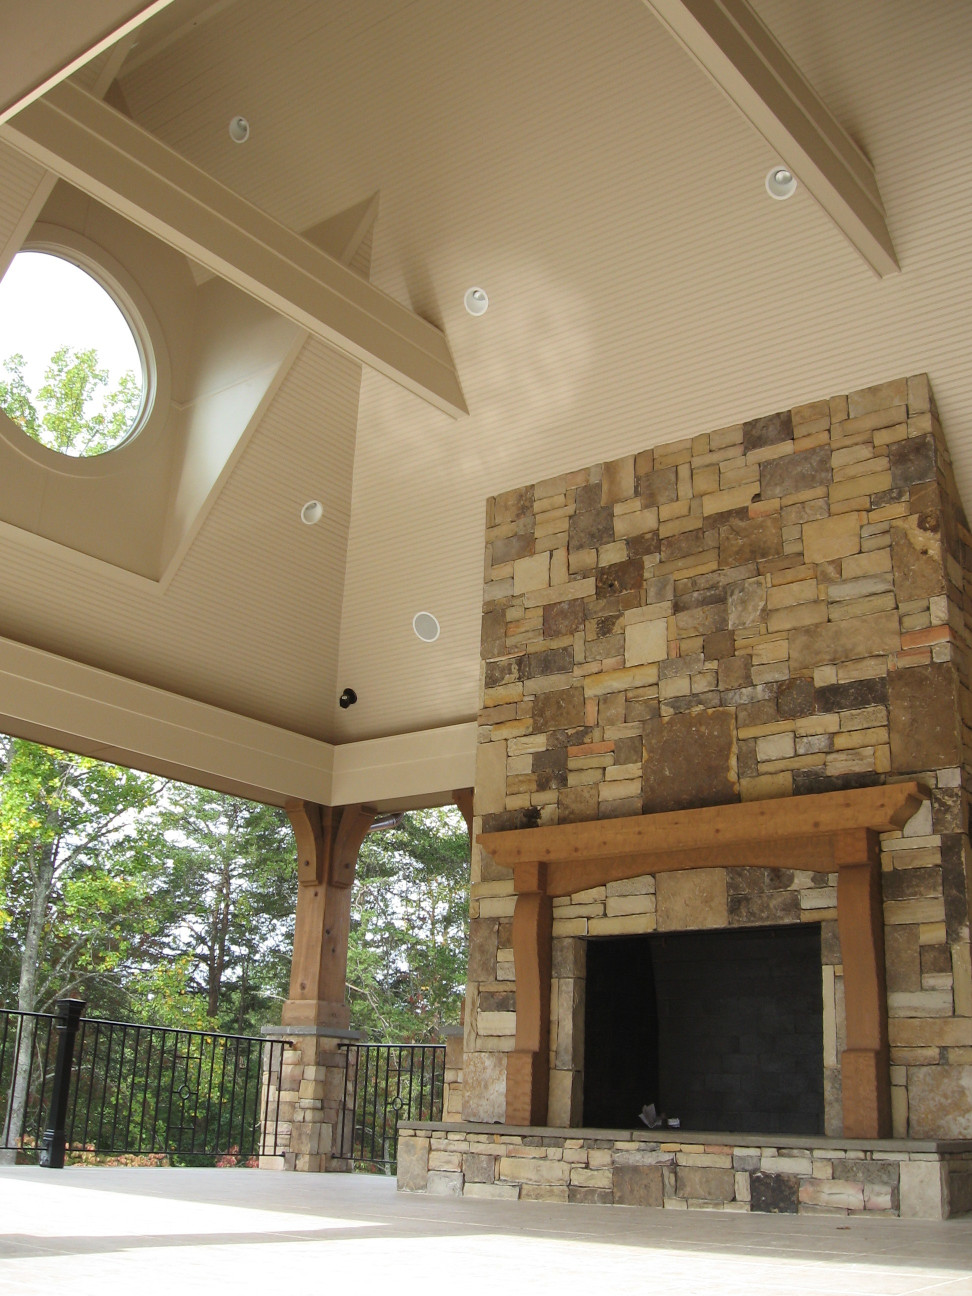 This Wood Mantel with legs is just the right touch on this porch fireplace.